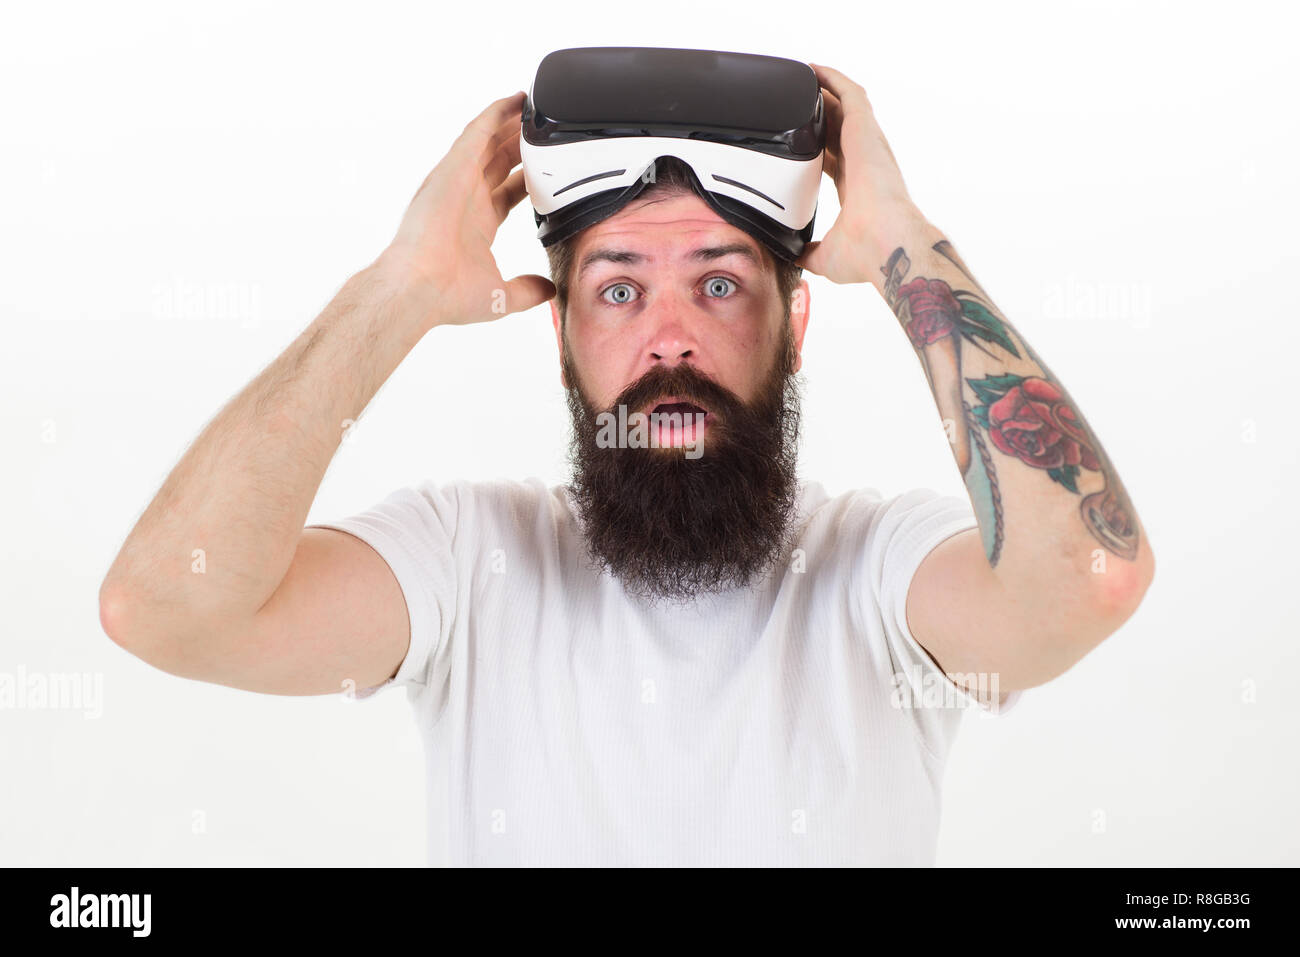 What benefits of virtual reality headset. Man bearded hipster with virtual reality headset on white background isolated. Sensational feelings of using VR headset. How virtual reality glasses work. - Stock Image